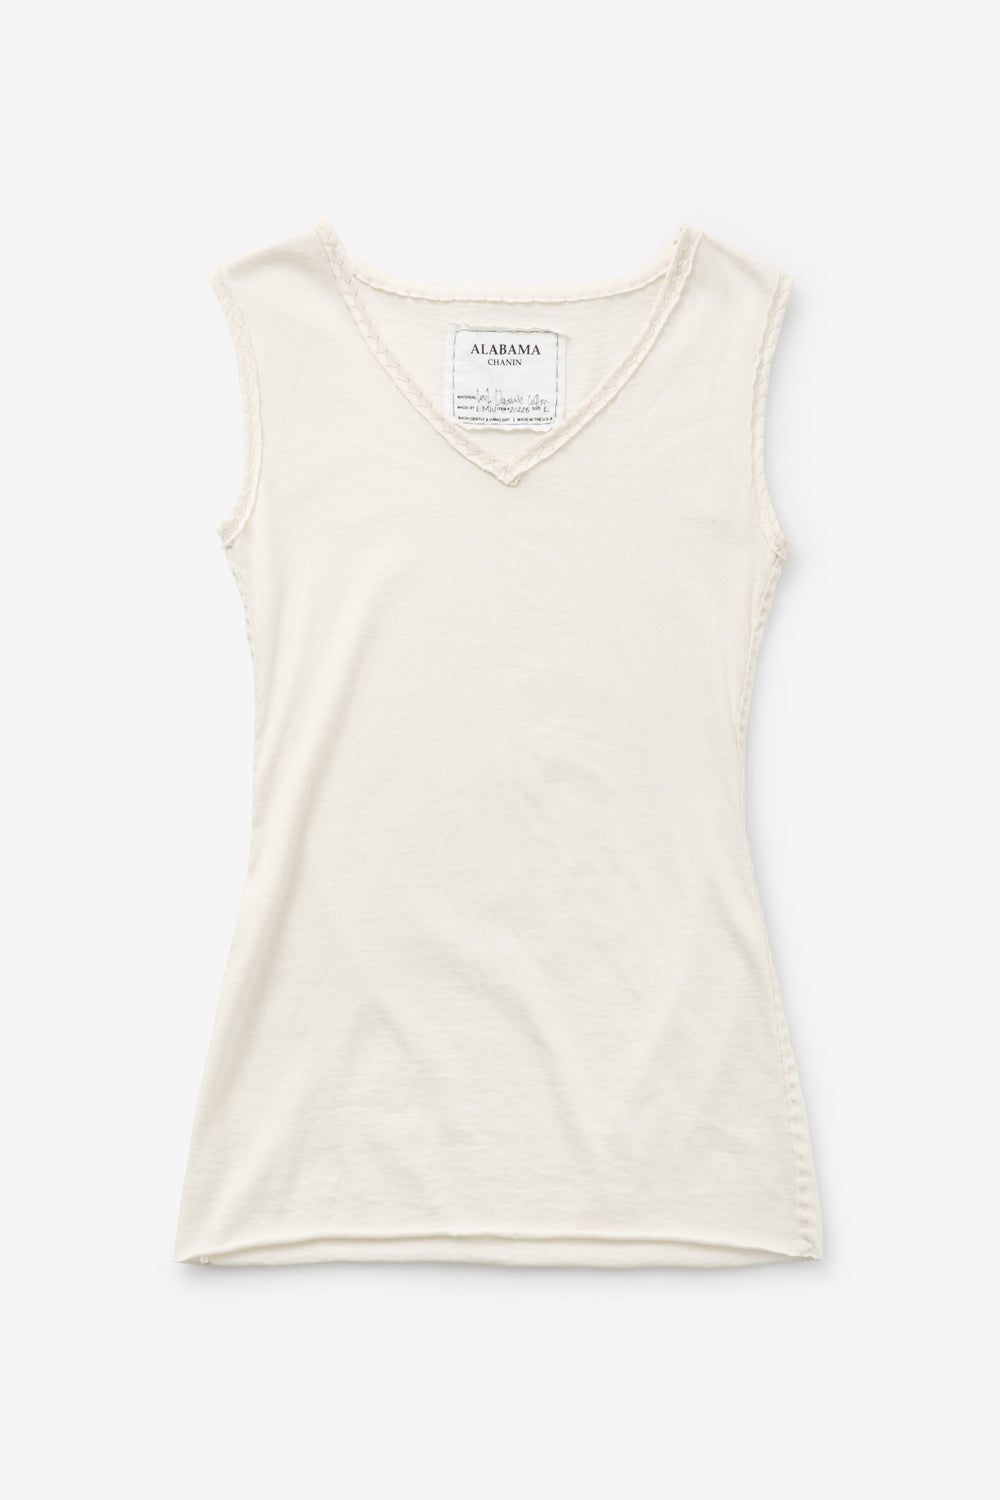 Alabama Chanin 100% Organic Cotton Top with V-Neck in Natural